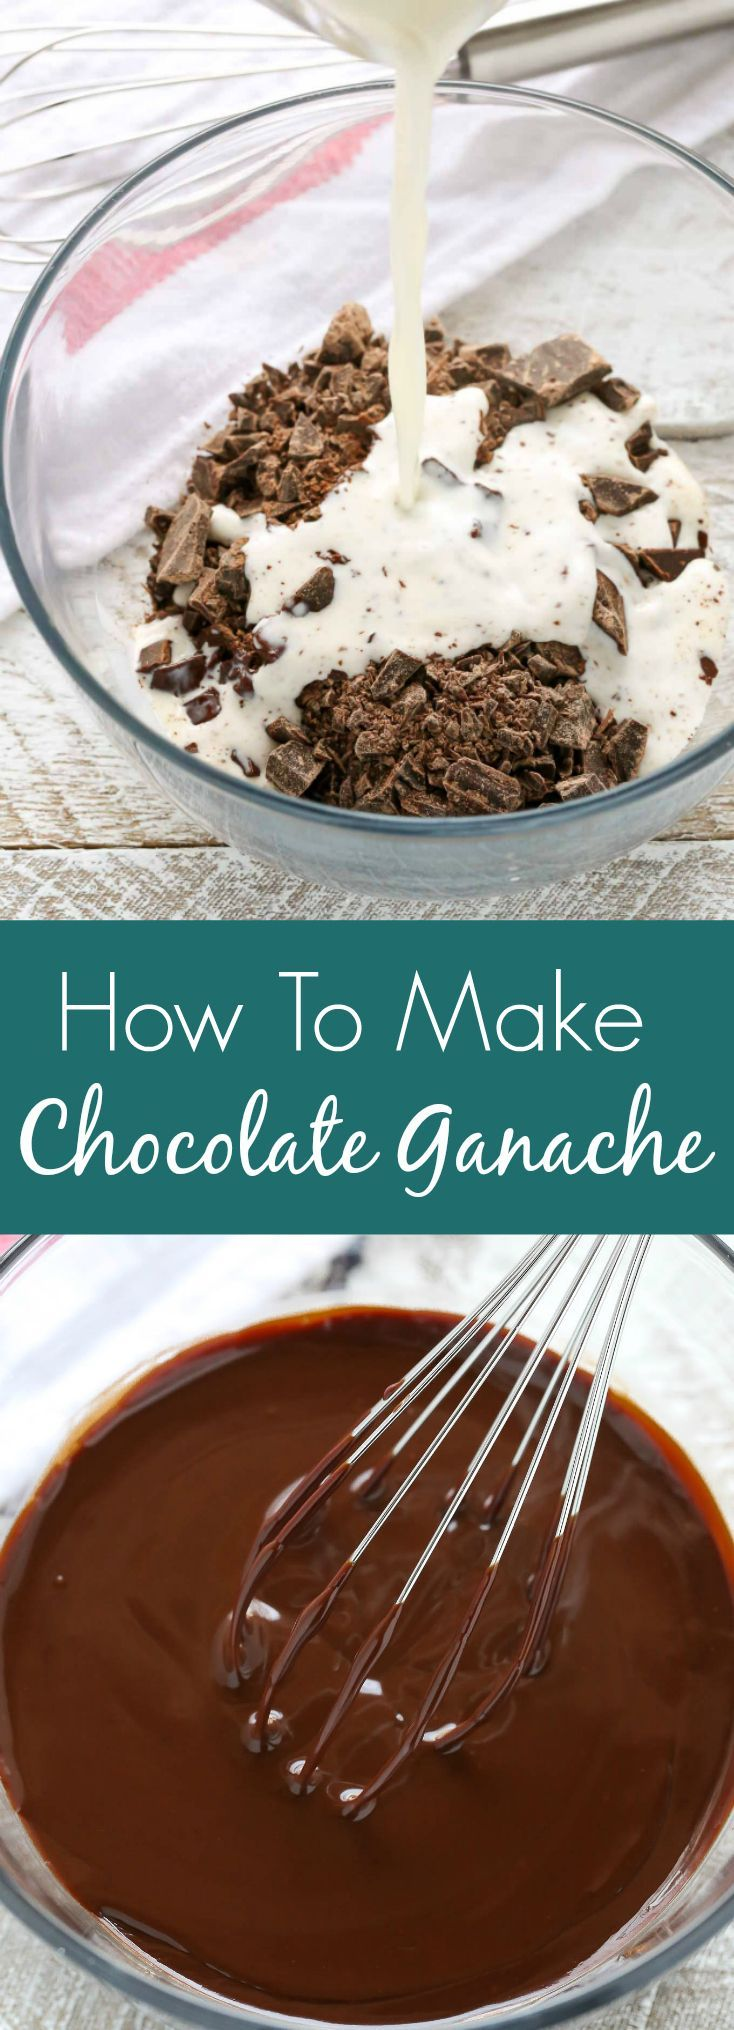 17 Best ideas about Ganache Recipe on Pinterest ...